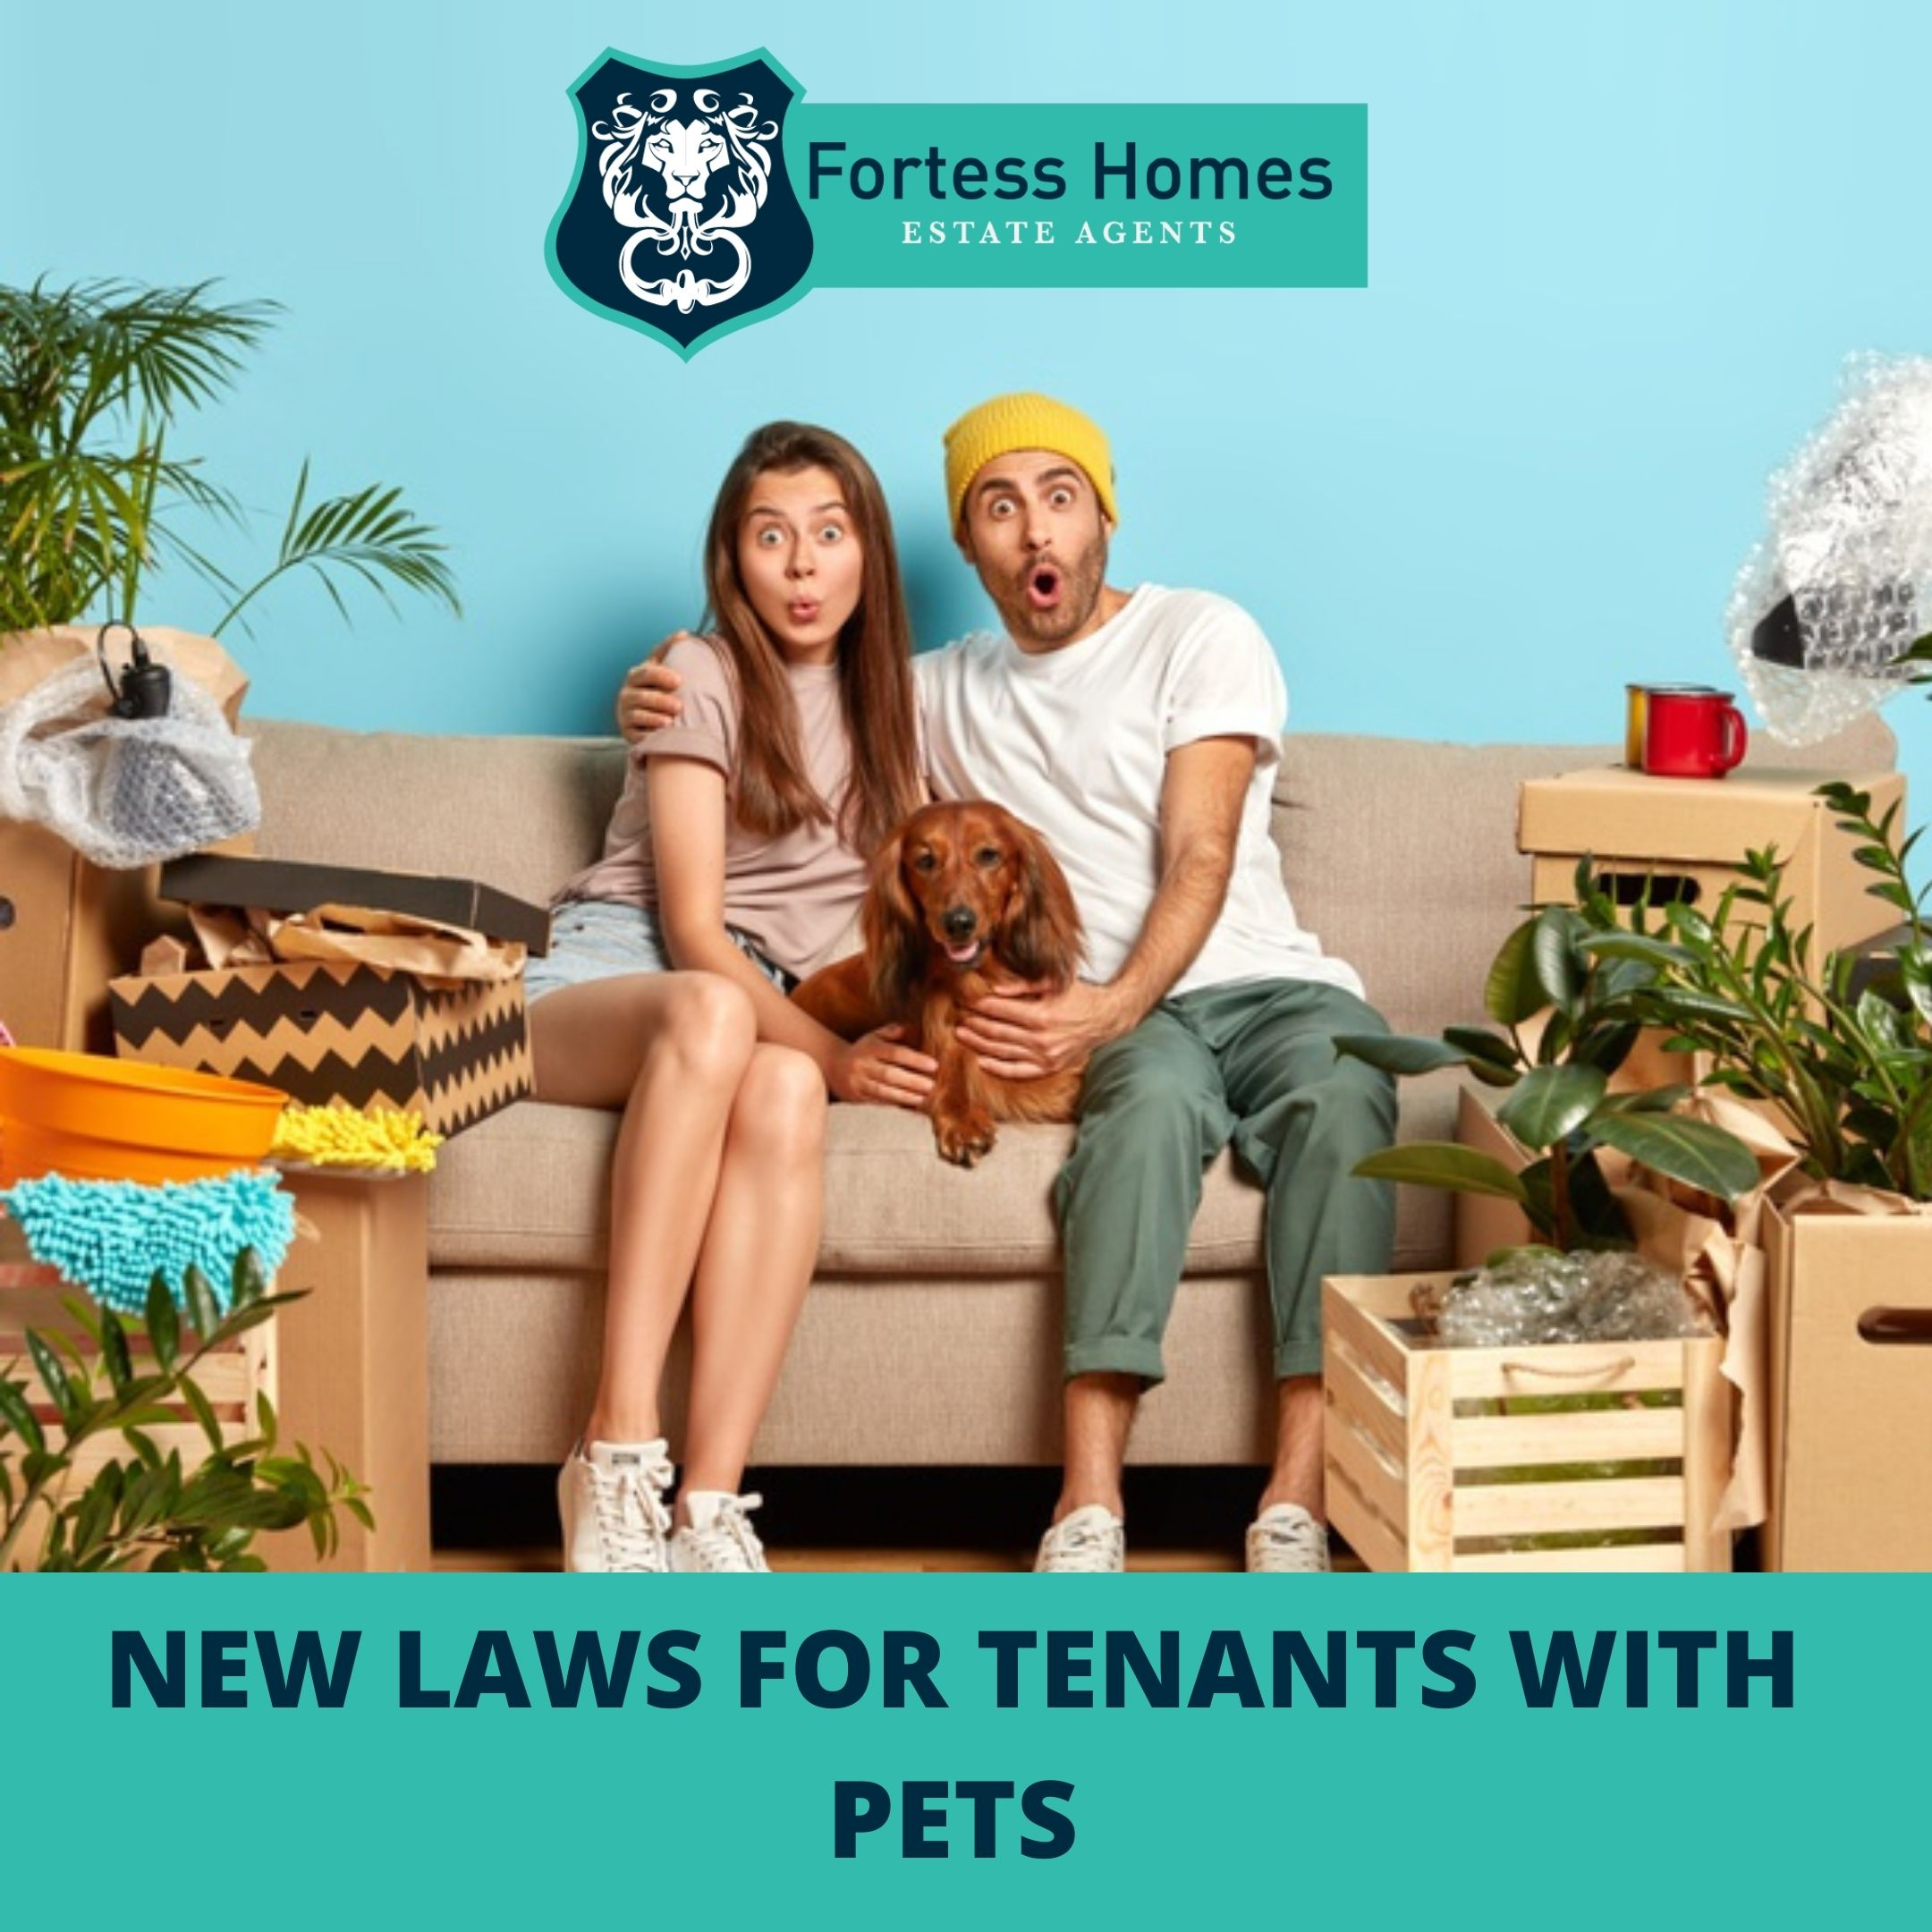 NEW LAWS FOR TENANTS WITH PETS